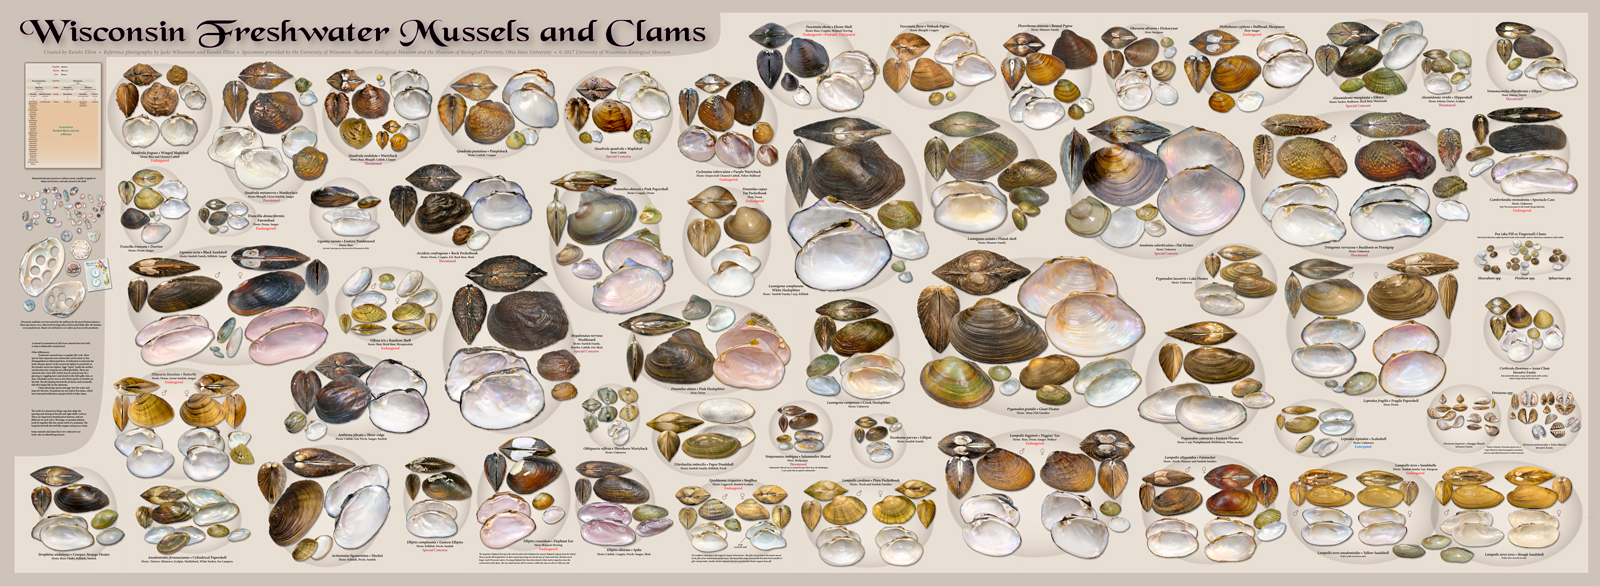 Wisconsin Freshwater Mussels and Clams Poster